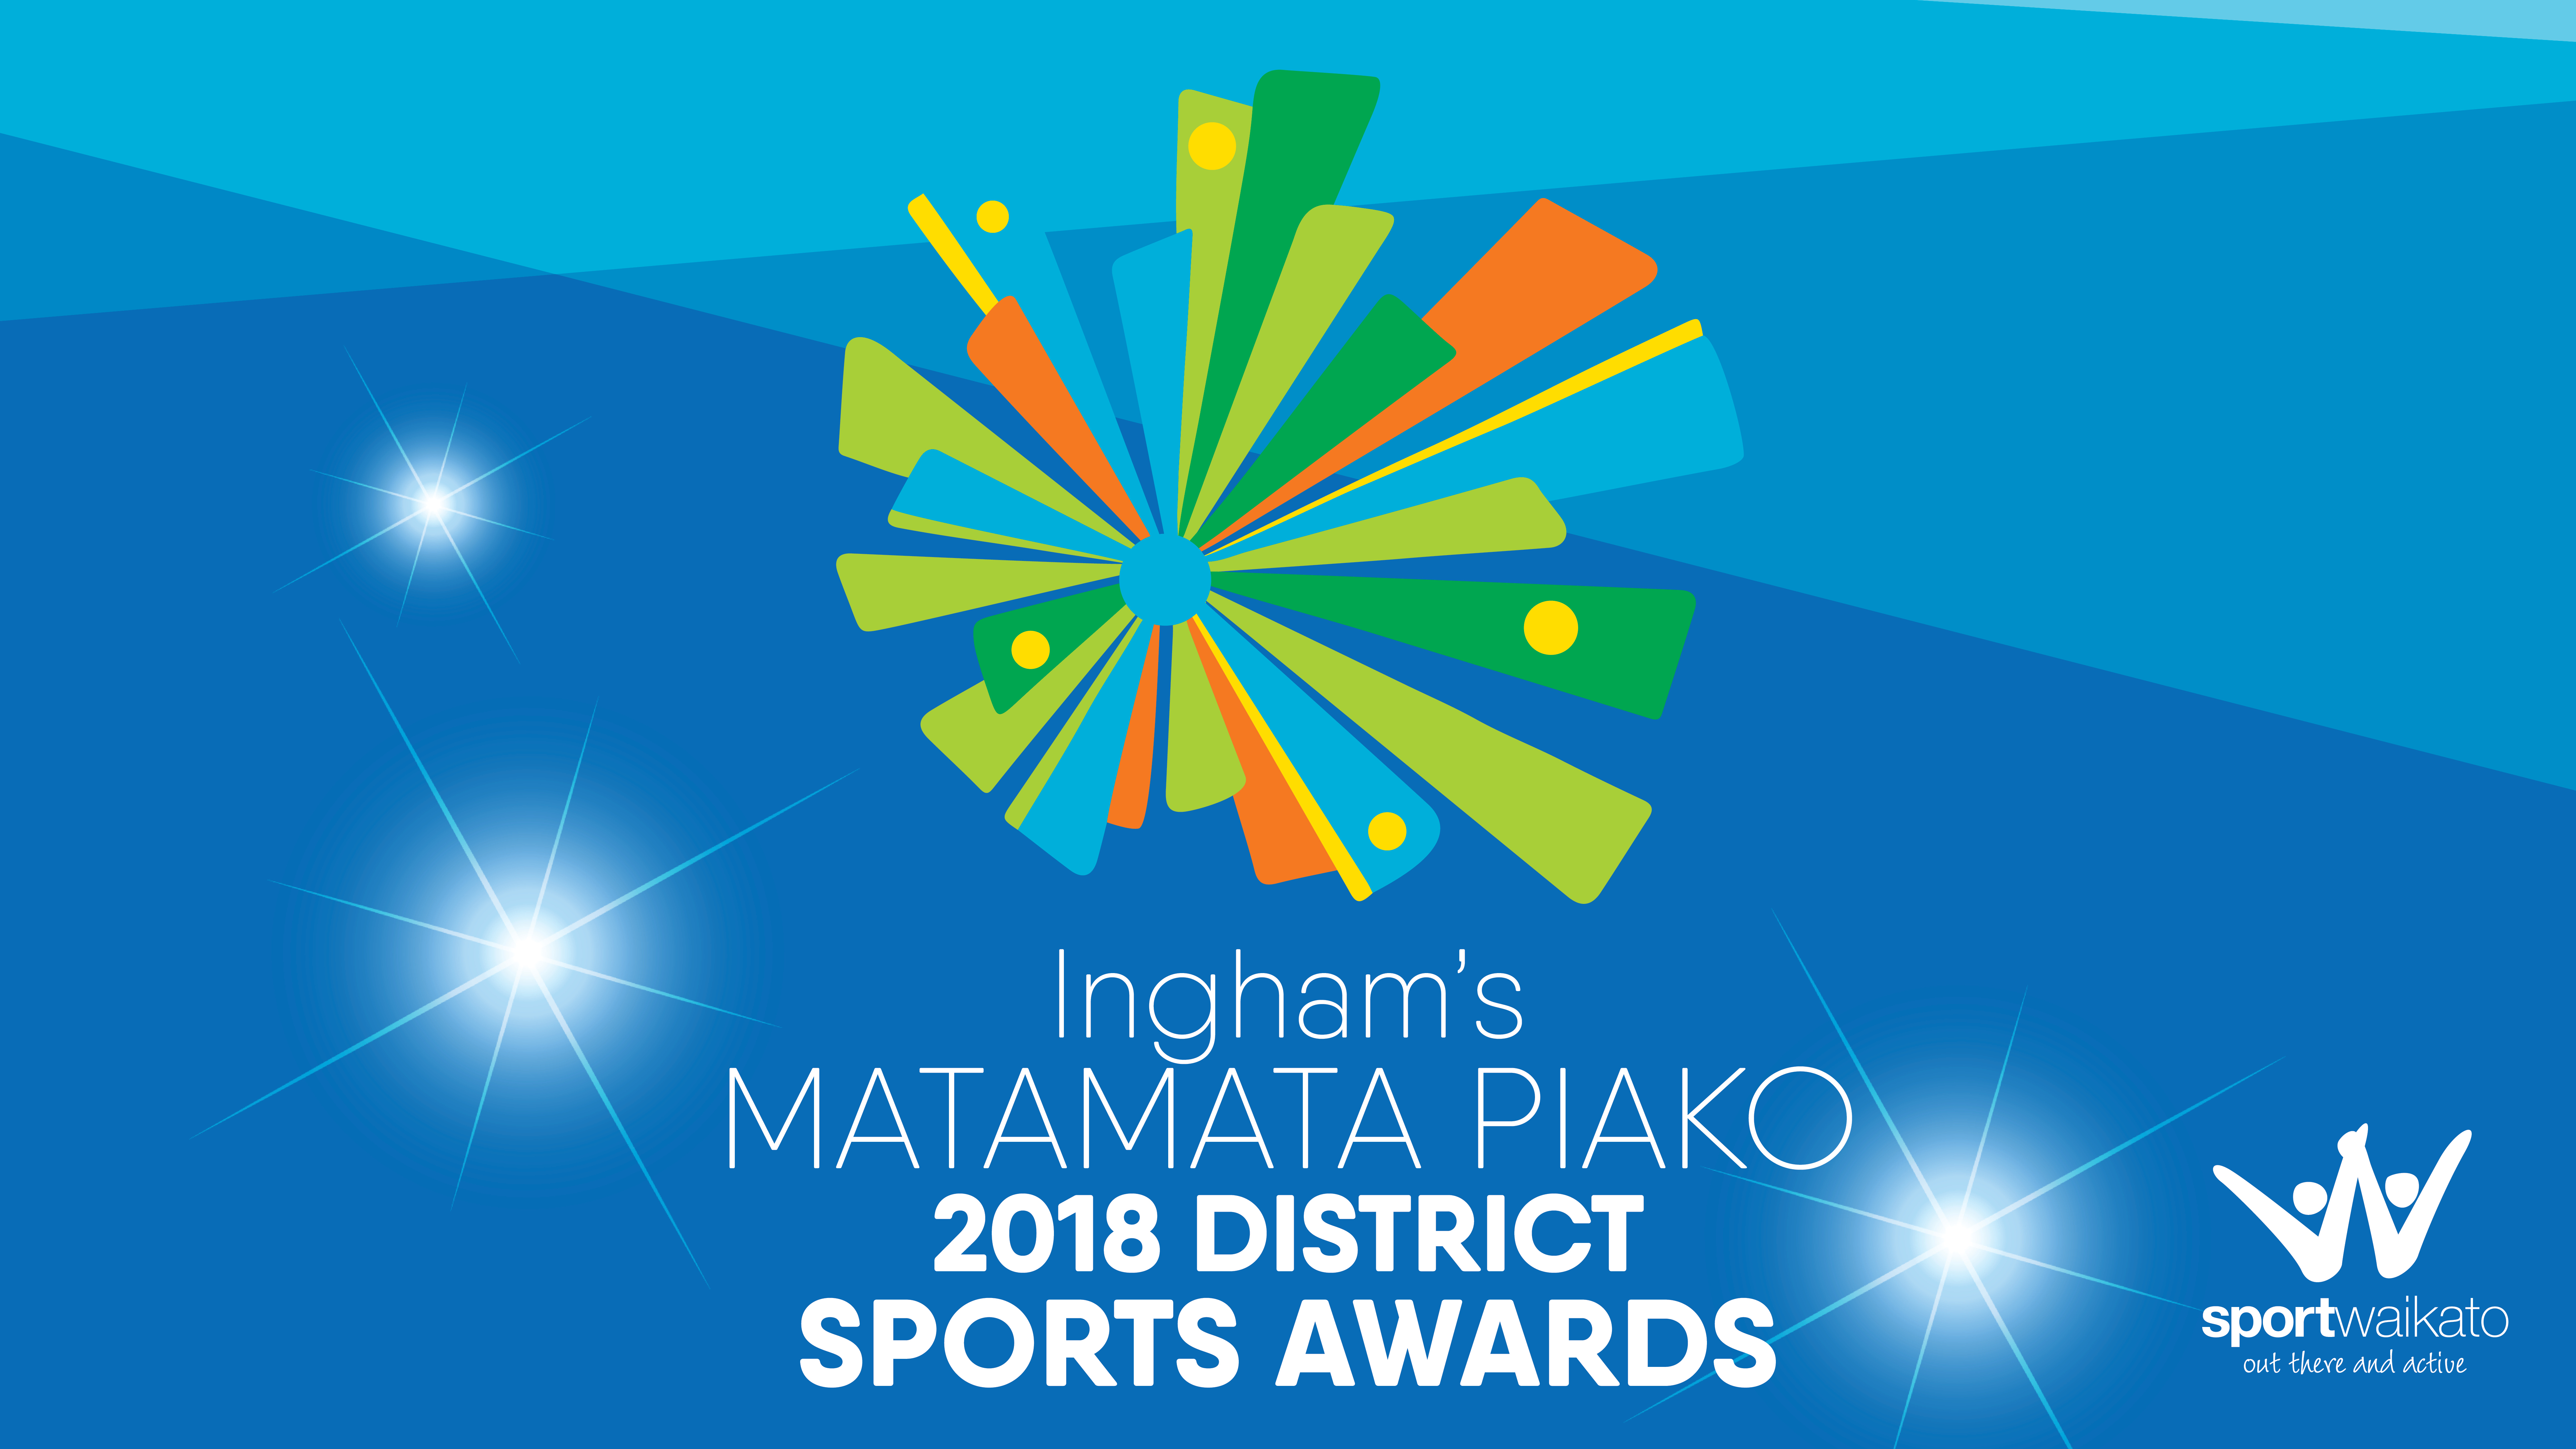 Ingham's Matamata Piako District Sports Awards nominations are in!